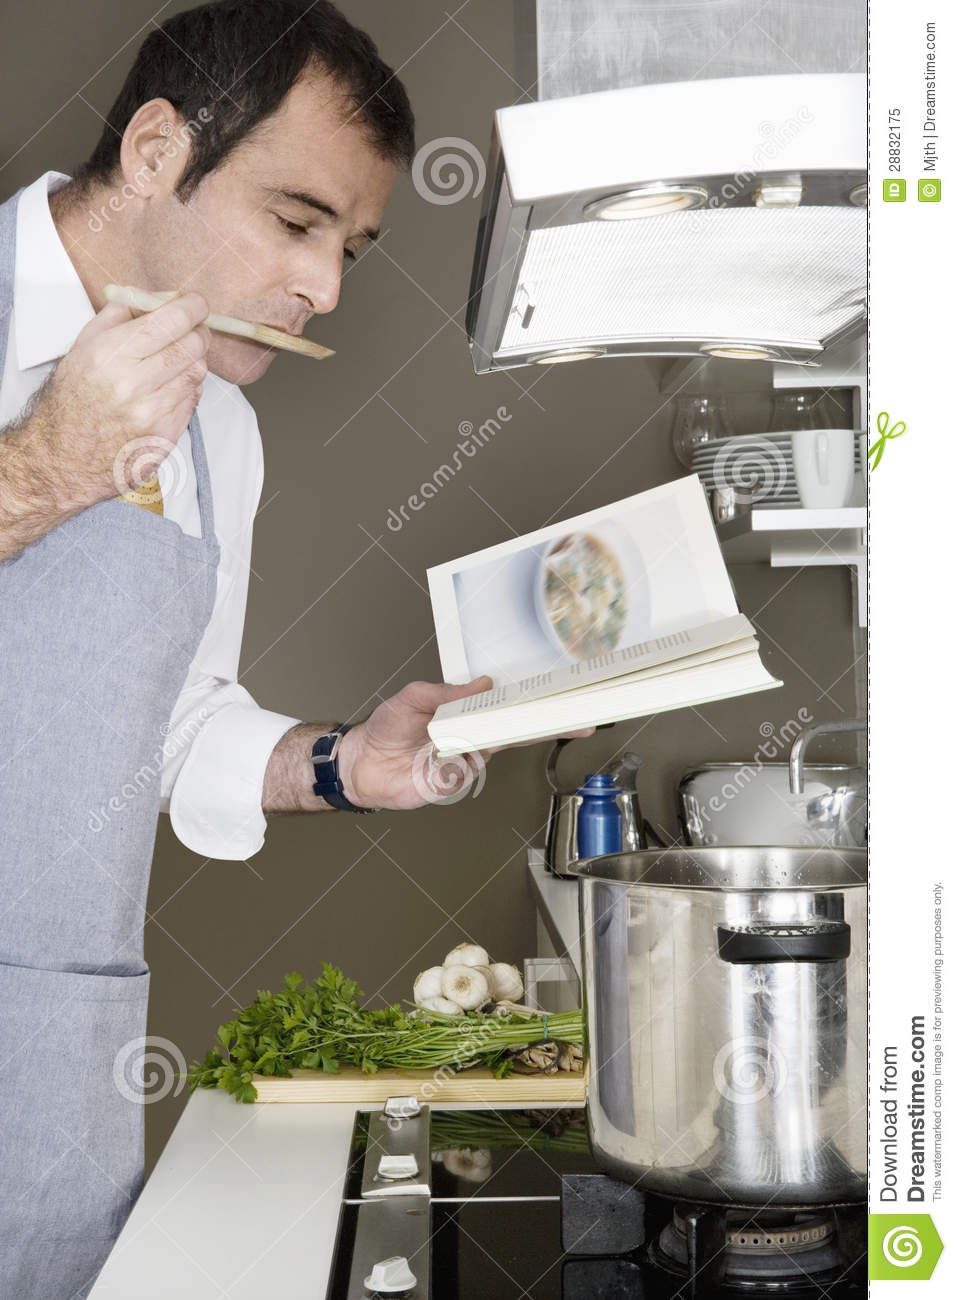 Man Cooking At Home Royalty Free Stock Photo - Image: 28832175